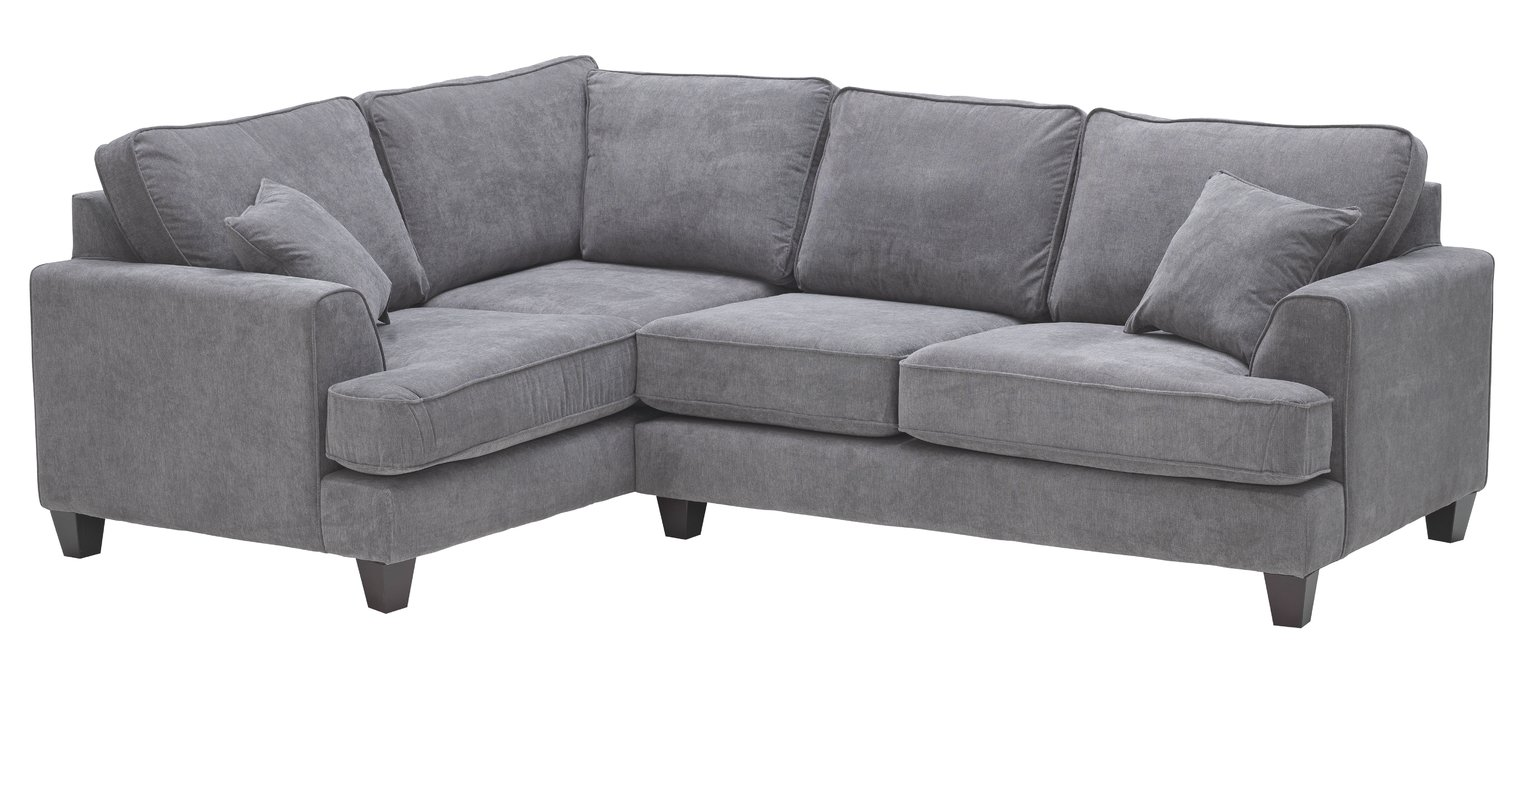 Argos Home Hampstead Left Corner Fabric Sofa - Pewter